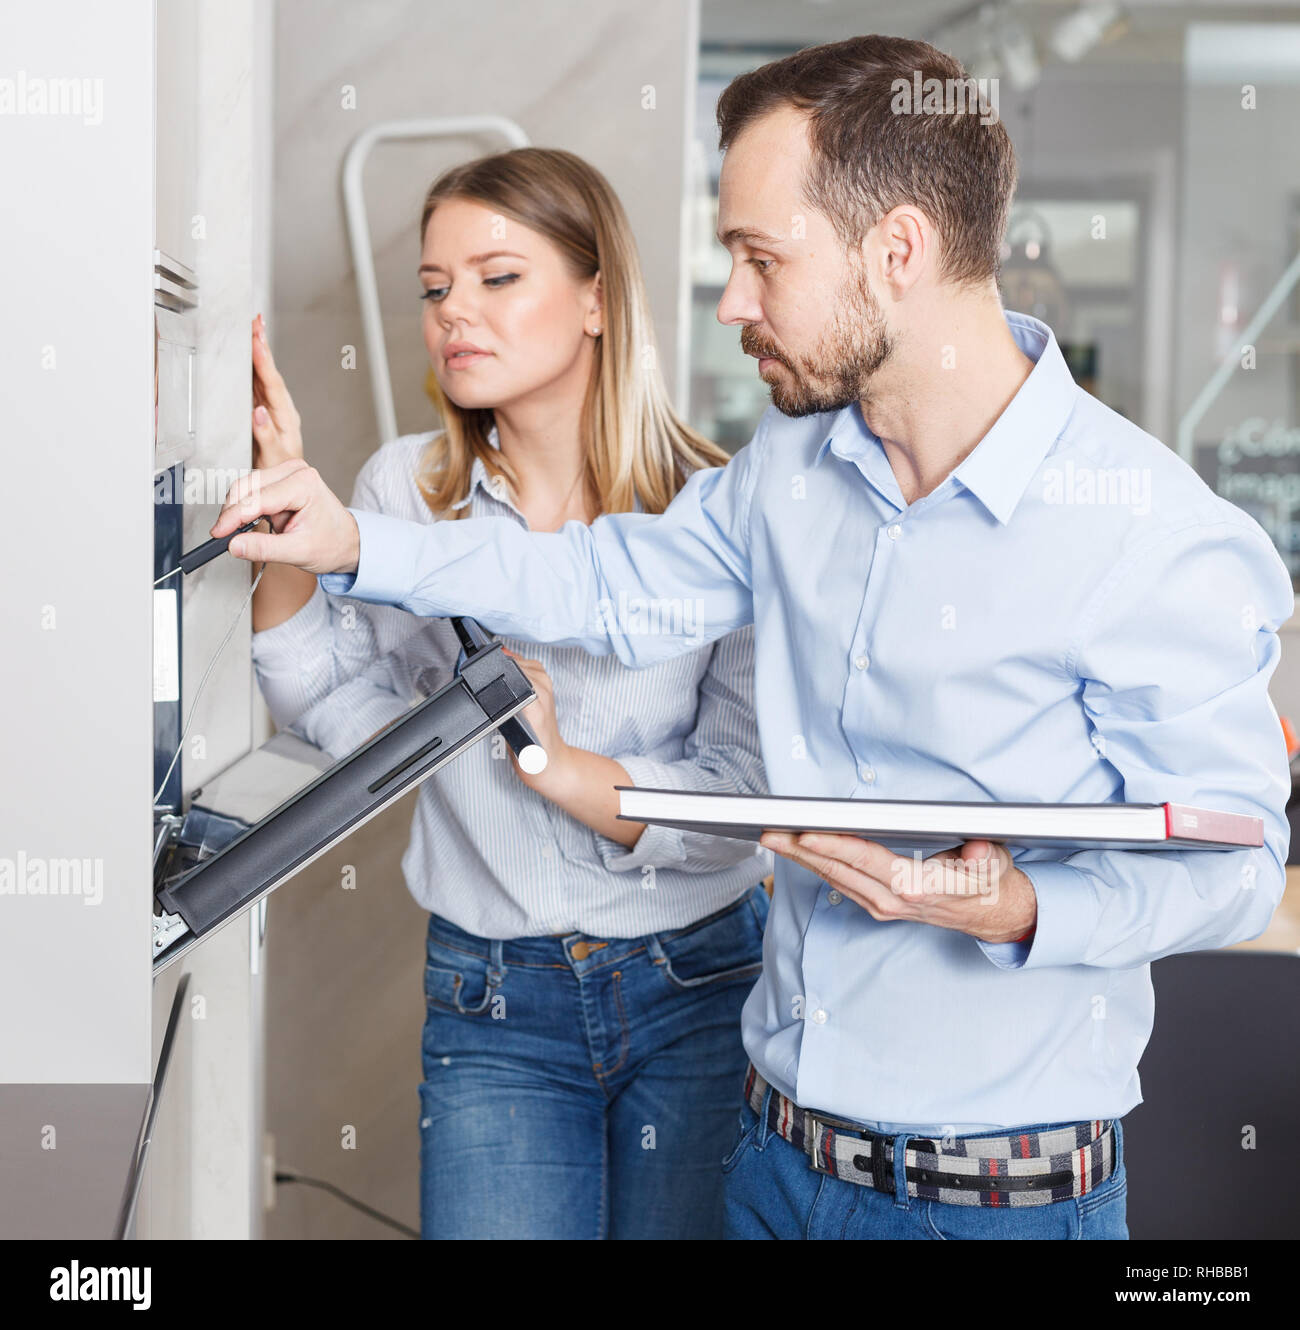 Young couple standing with cookbook in stylish kitchen near open oven, controlling temperature with probe - Stock Image